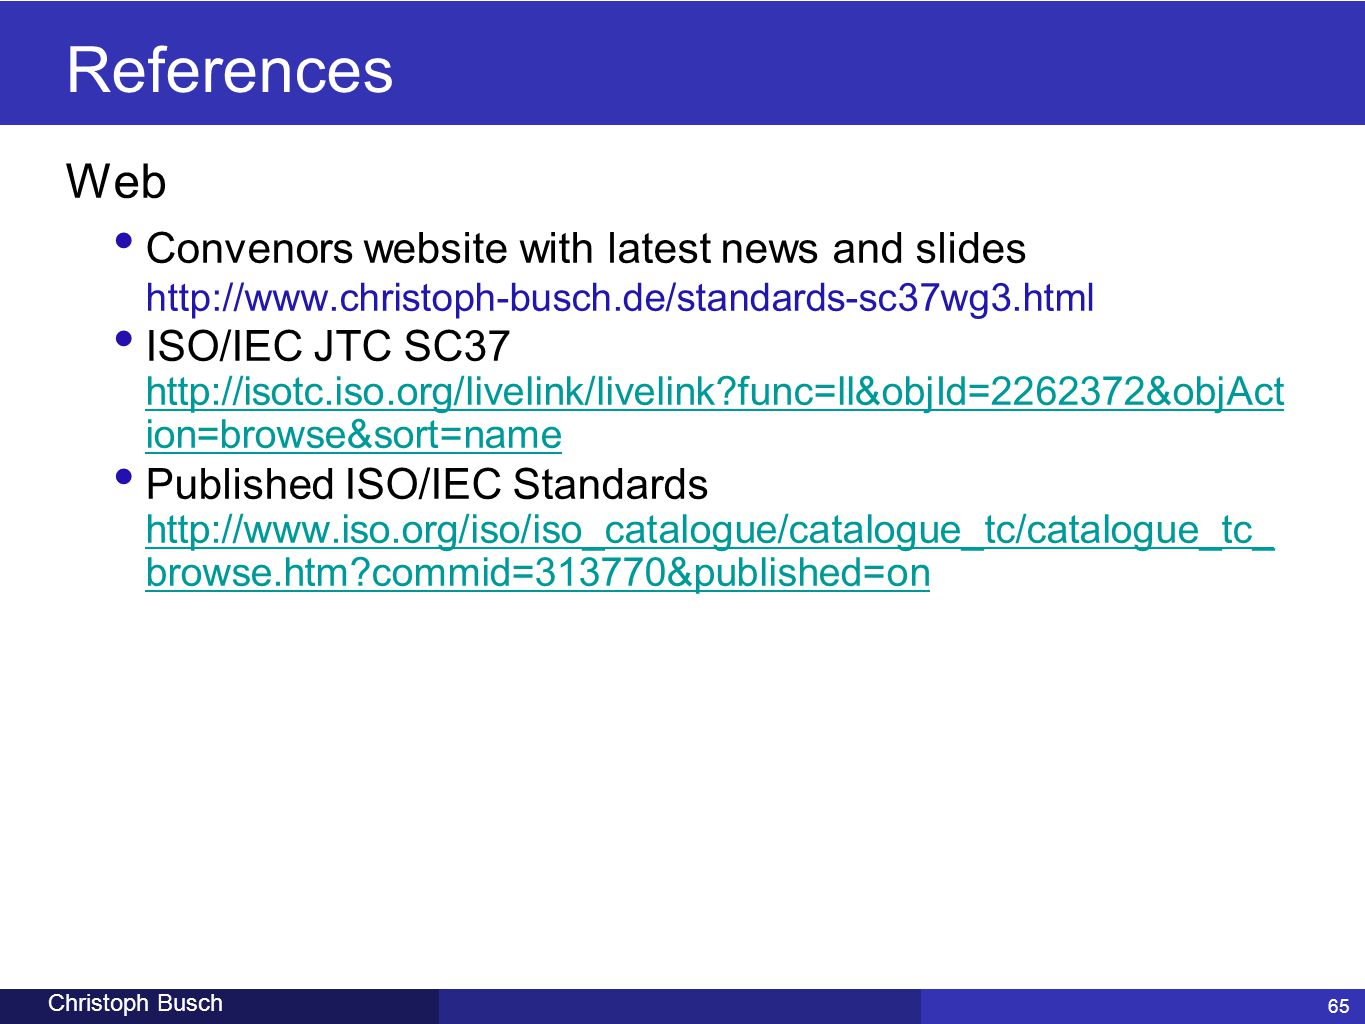 References Web. Convenors website with latest news and slides http://www.christoph-busch.de/standards-sc37wg3.html.